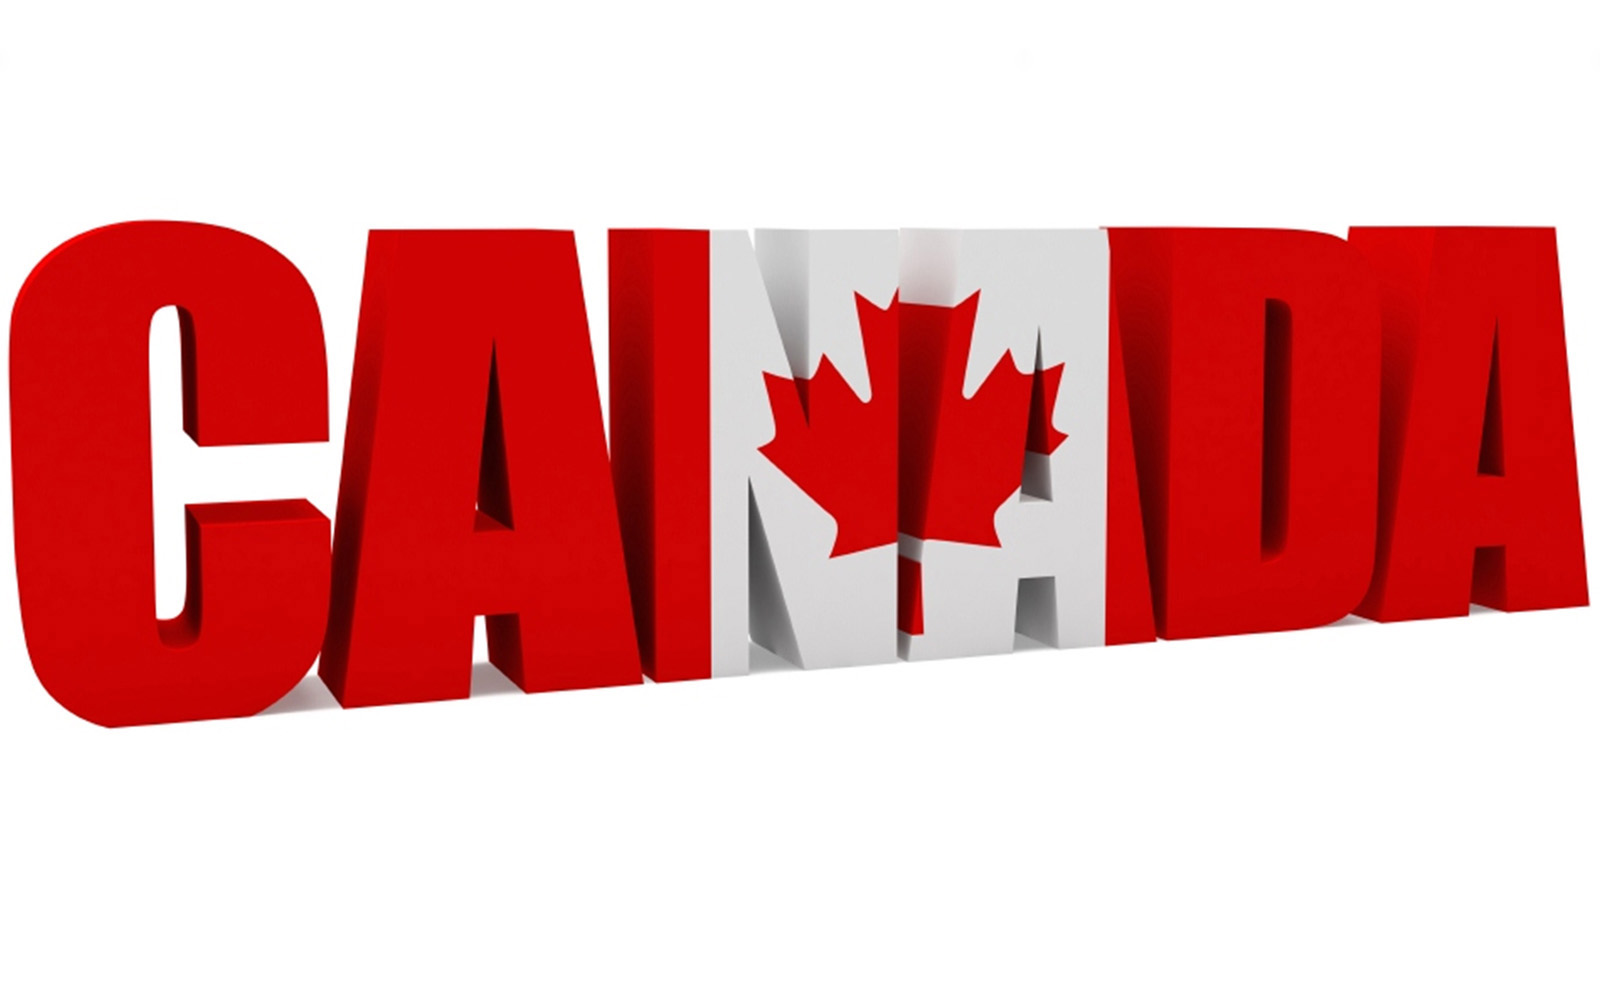 Hd wallpapers canada flag wallpapers - Canada flag wallpaper hd for iphone ...